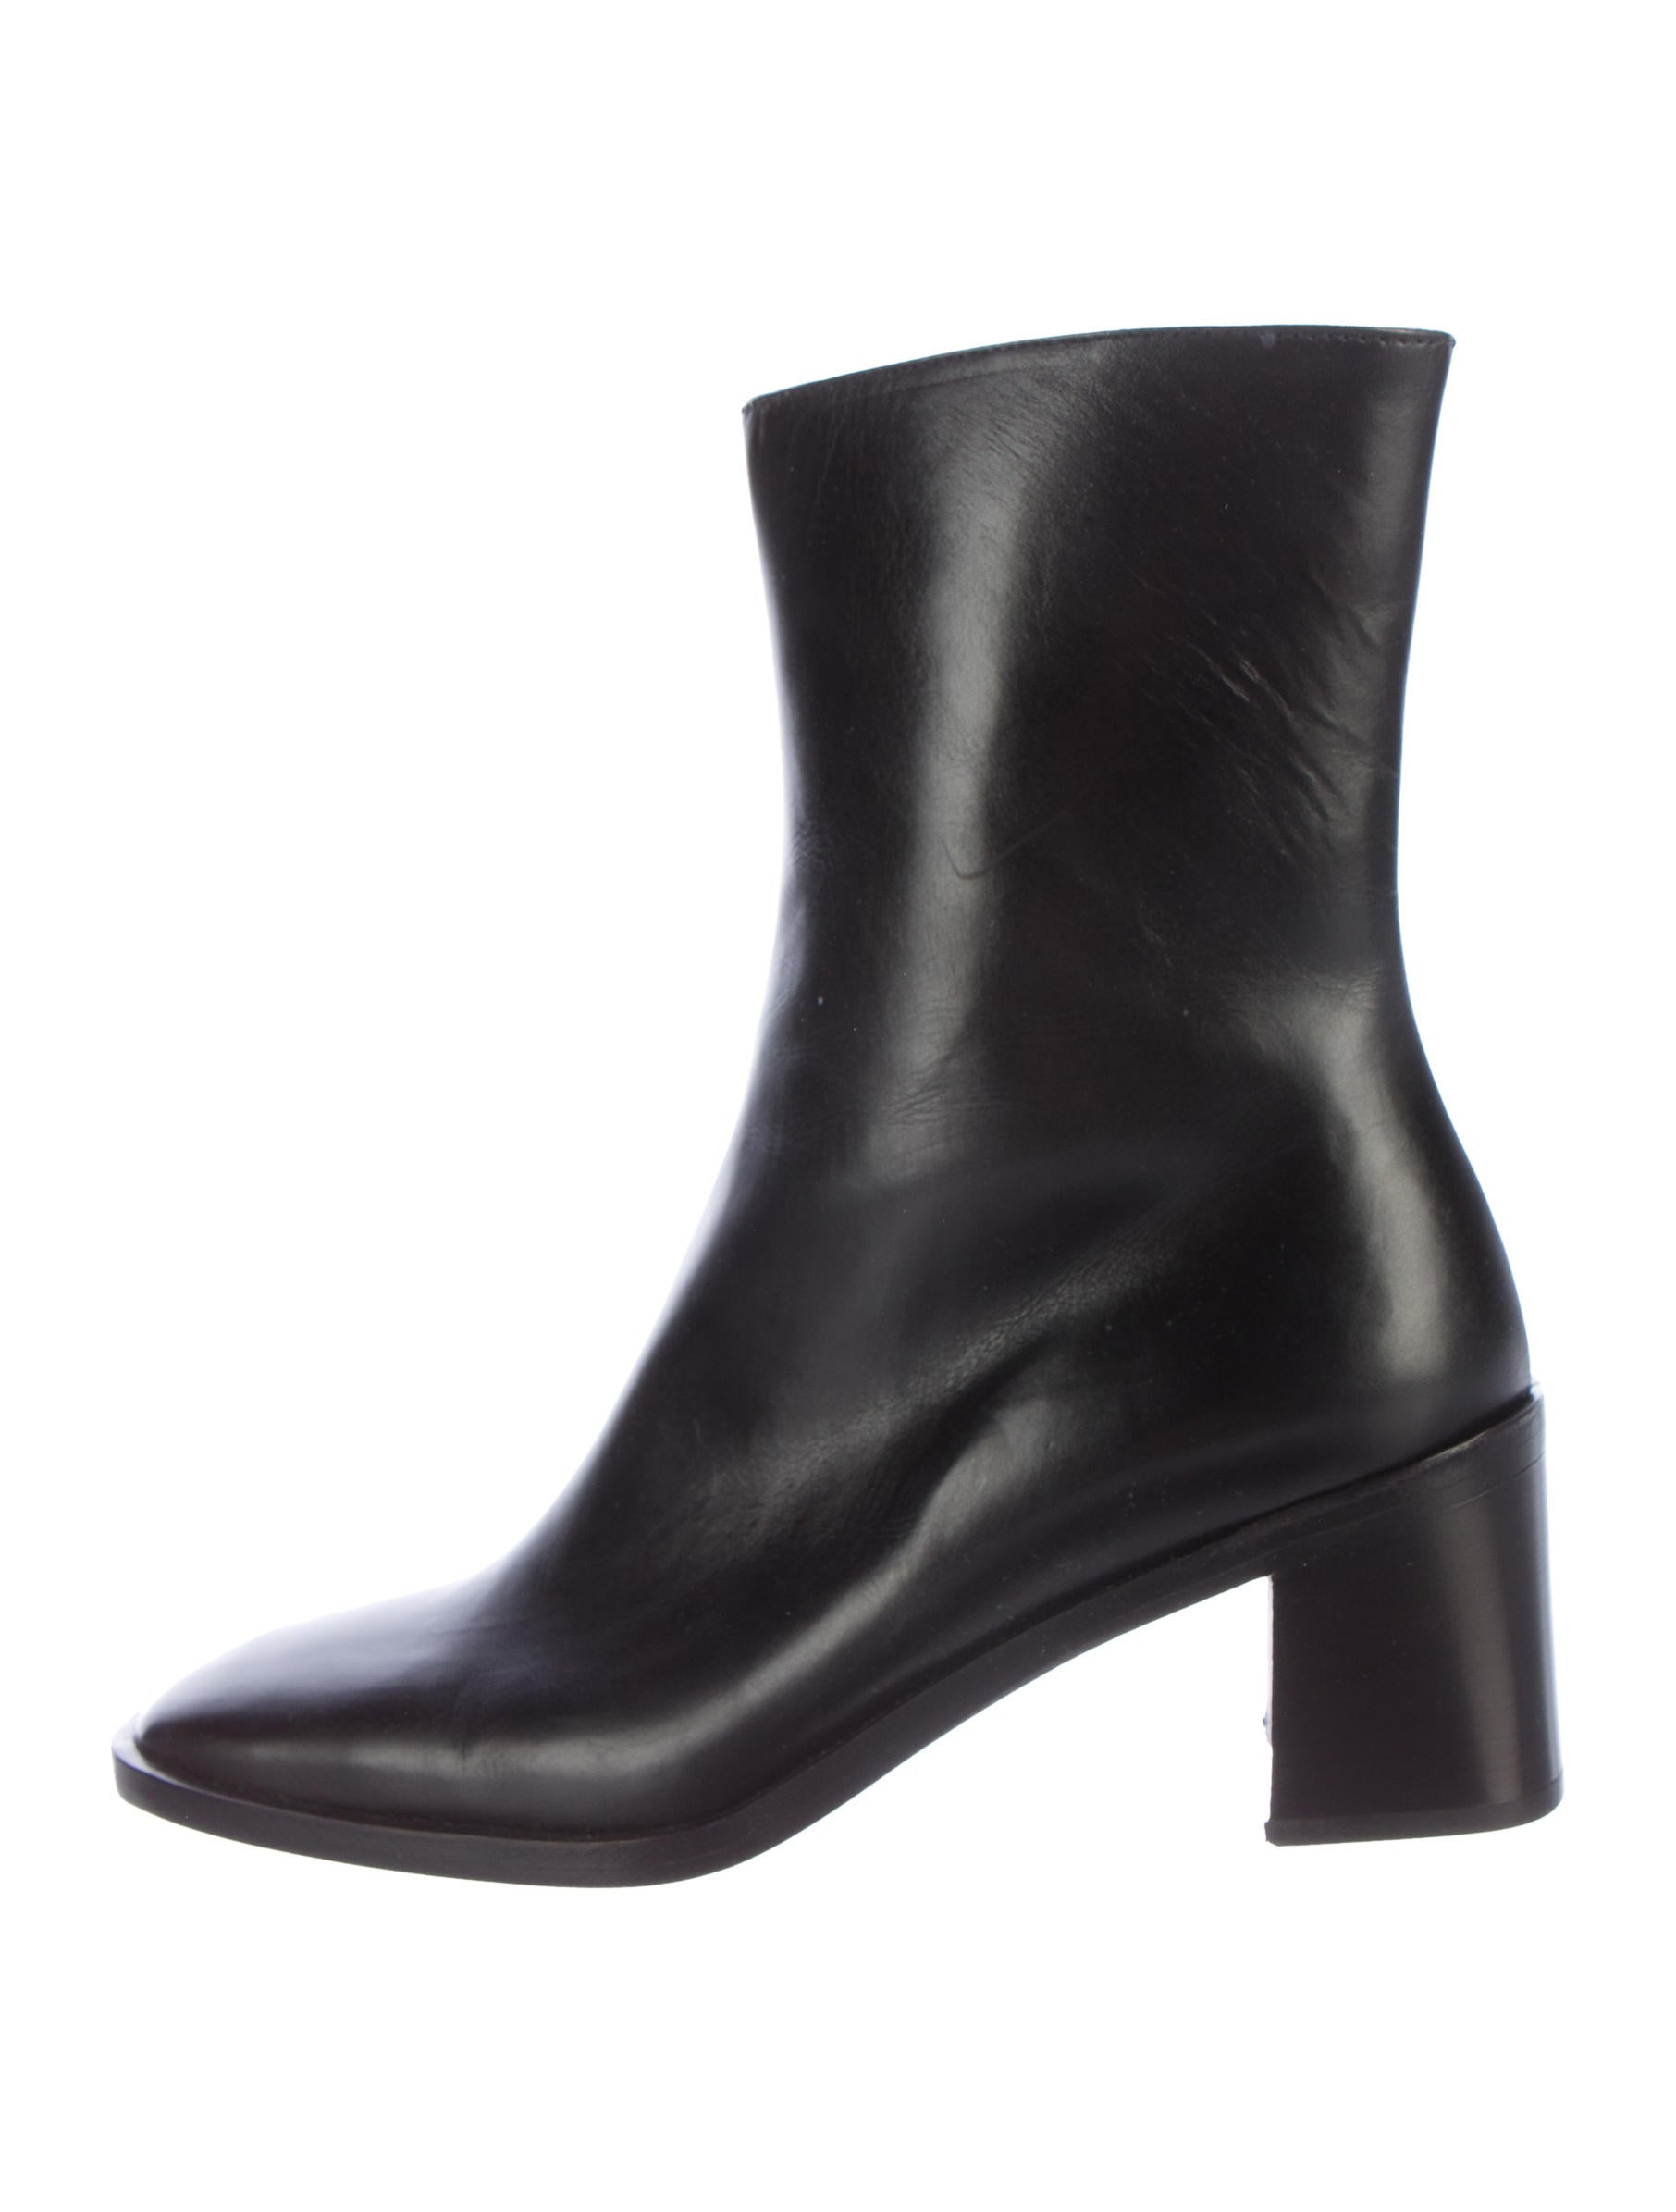 gucci leather square toe ankle boots shoes guc132618